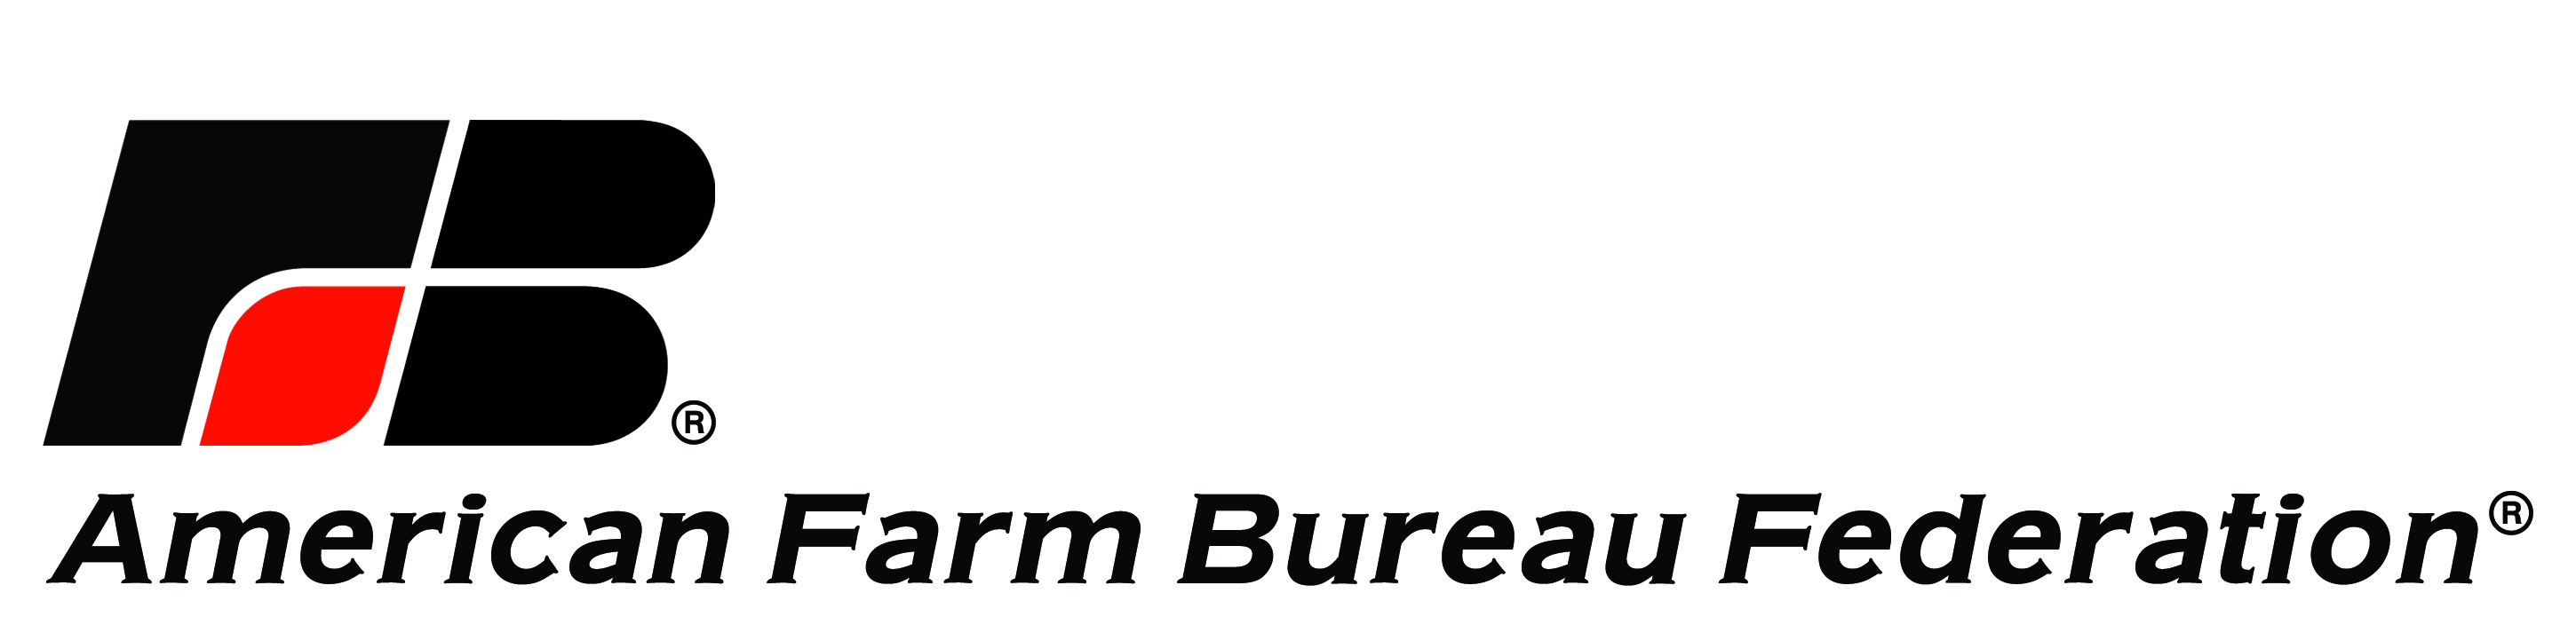 American Farm Bureau Board Votes Unanimously to Support Goodlatte AG Act  Provisions - Southeast AgNET